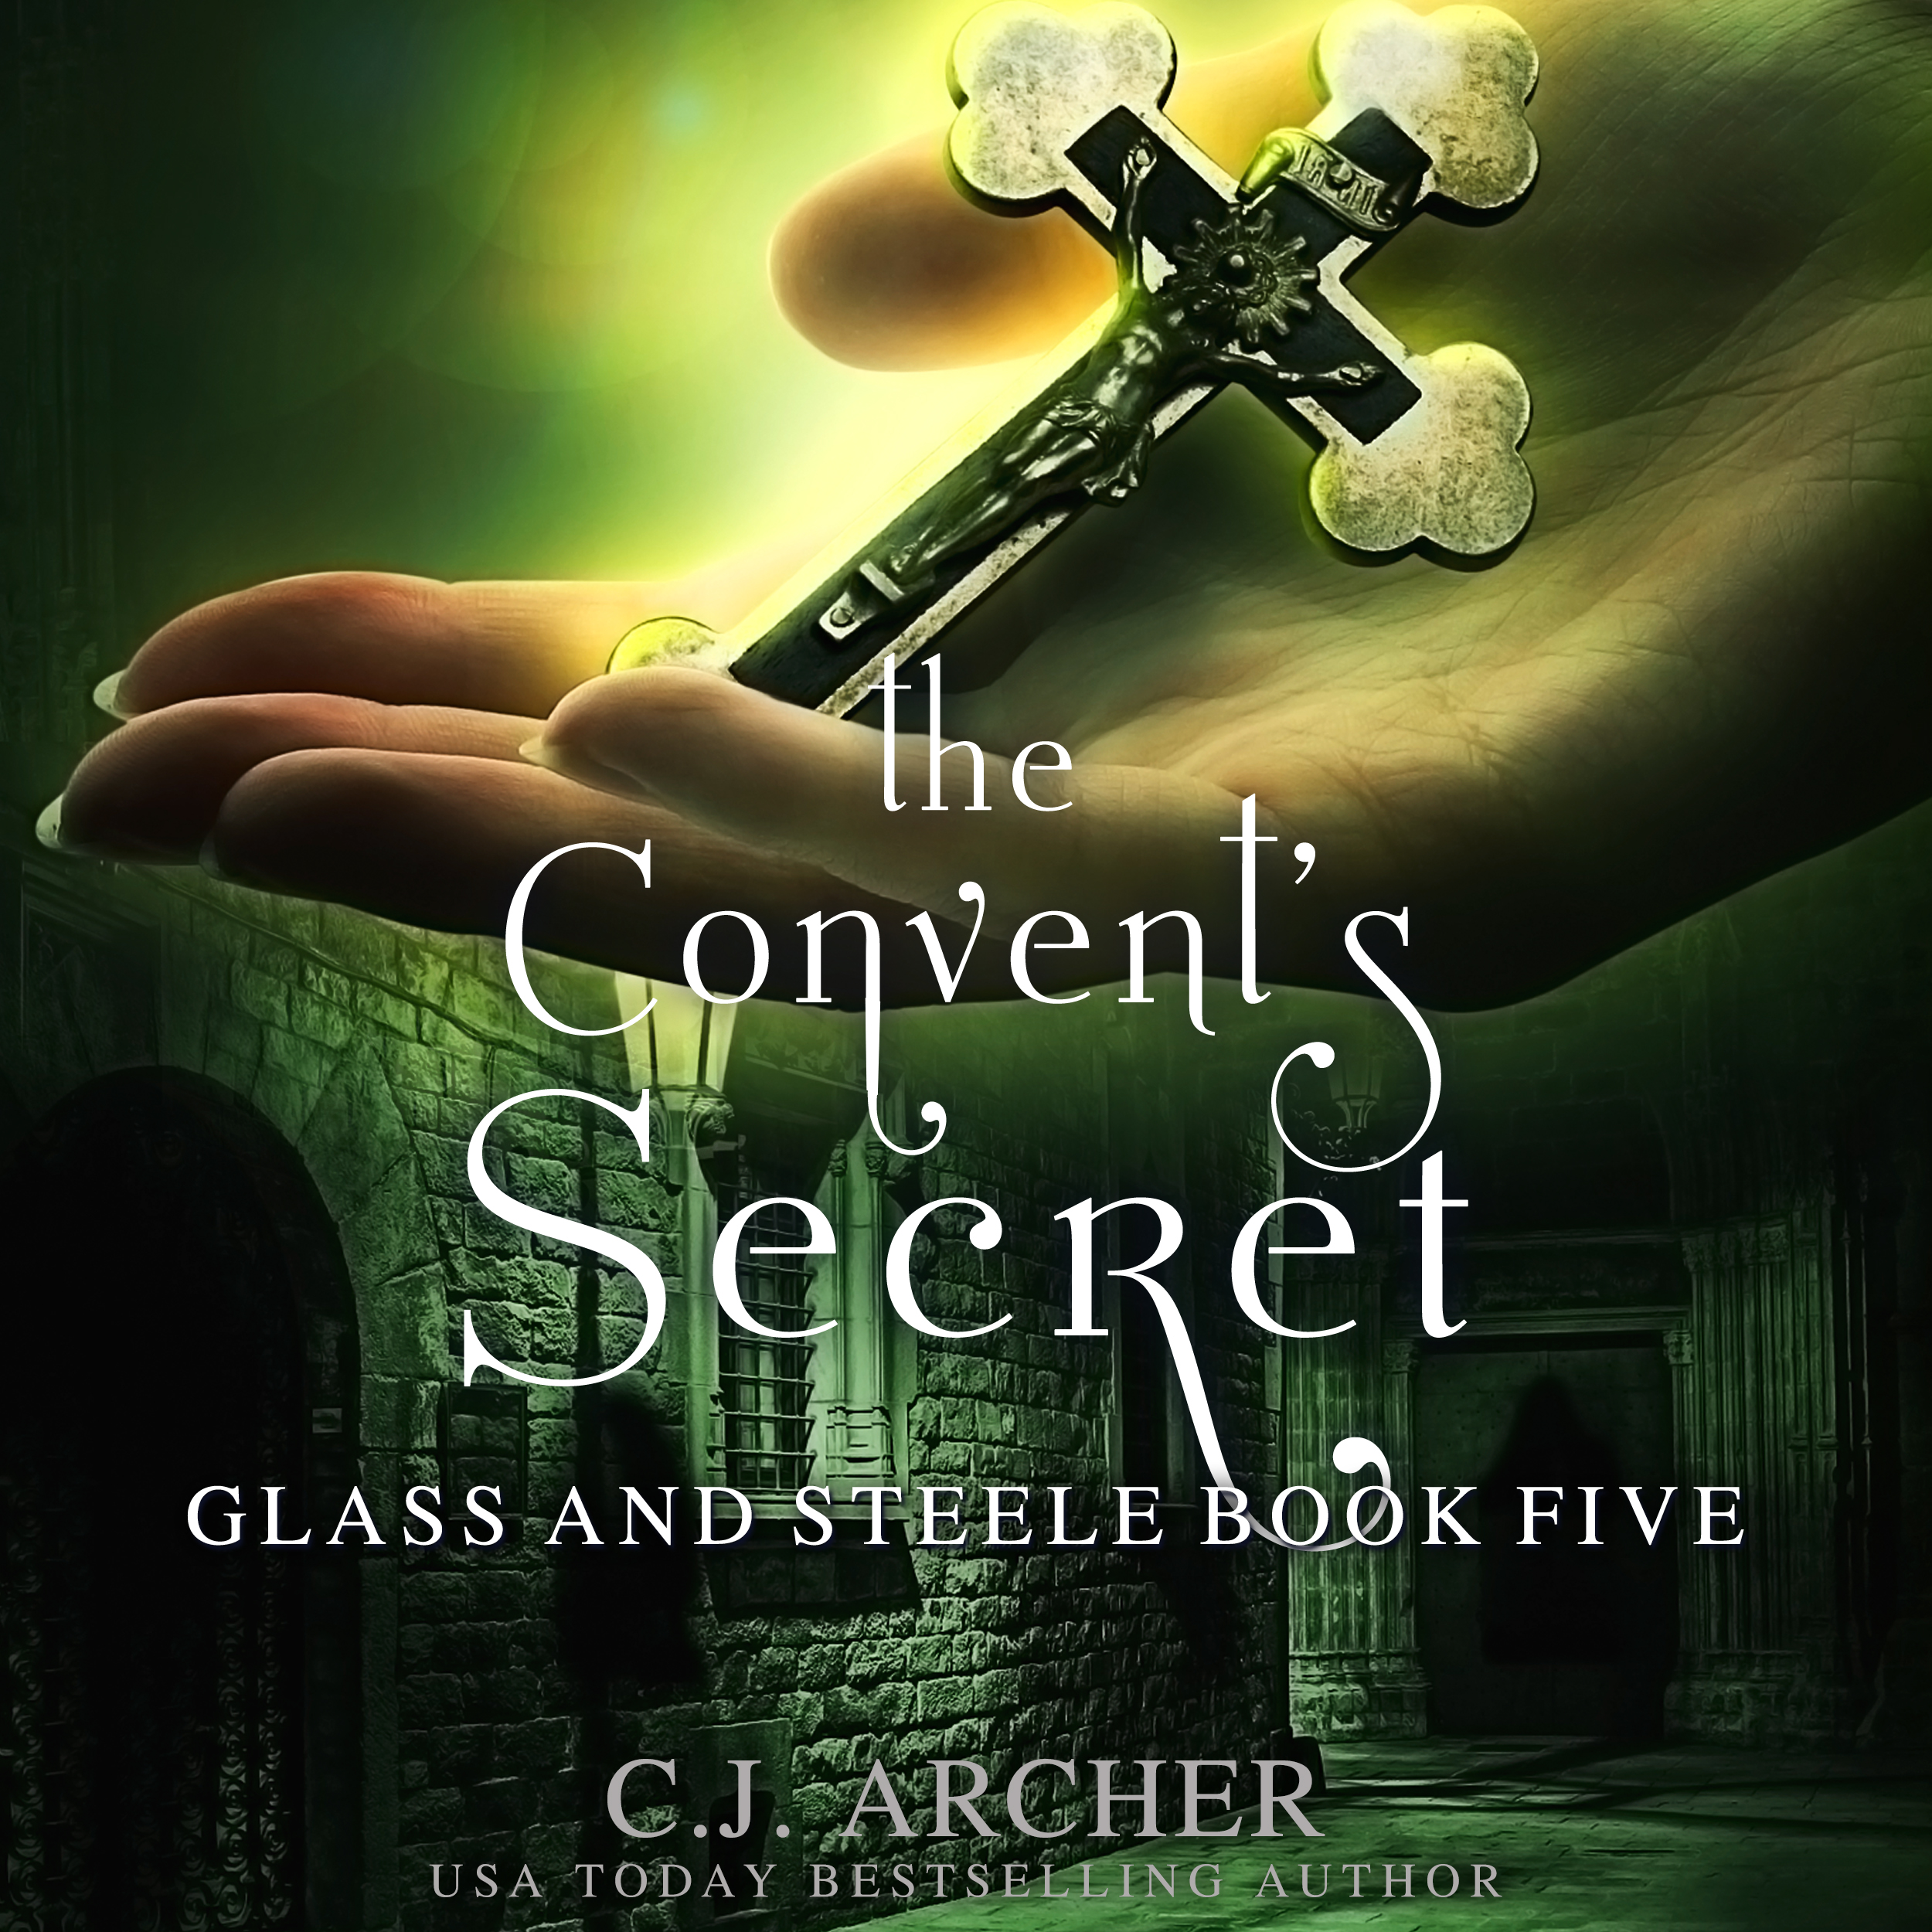 The Convent's Secret audiobook by CJ Archer